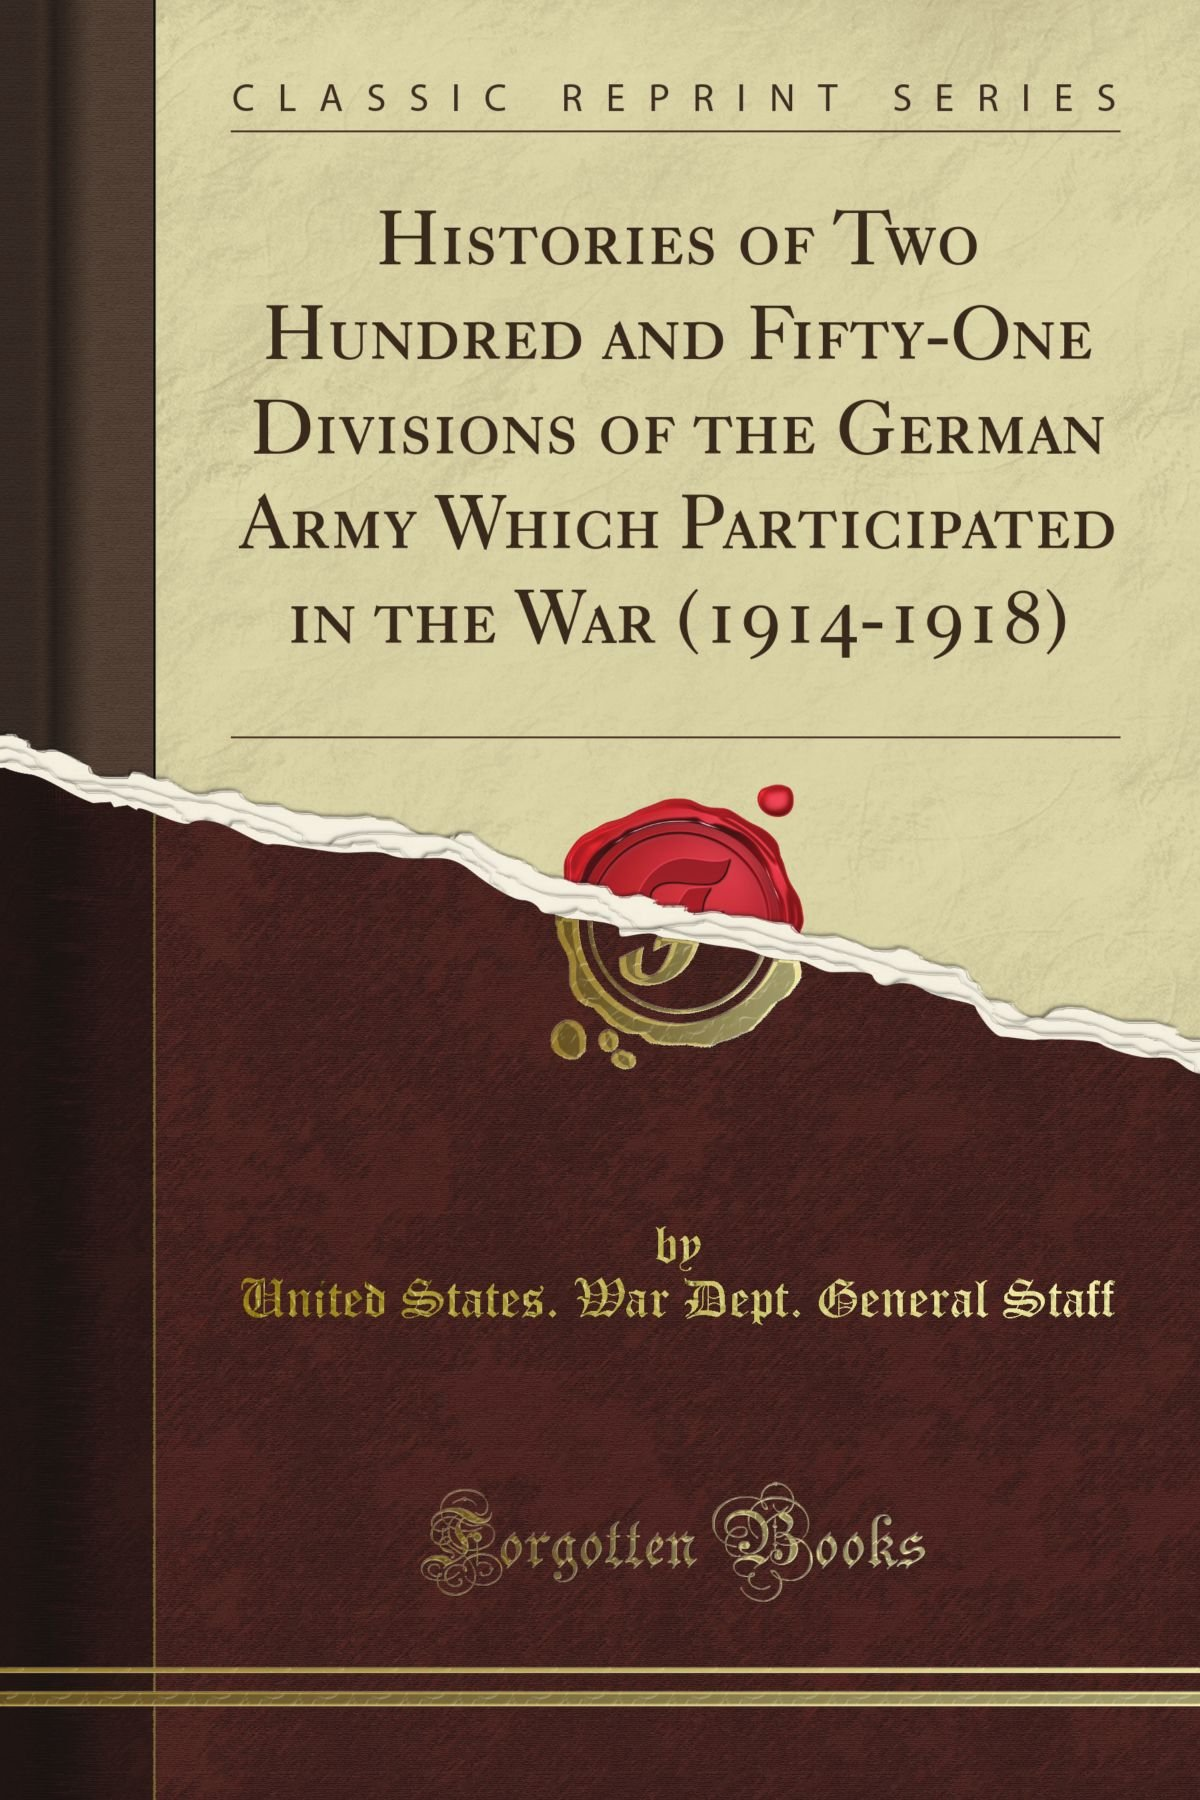 Histories of Two Hundred and Fifty-One Divisions of the German Army Which Participated in the War (1914-1918) (Classic Reprint) pdf